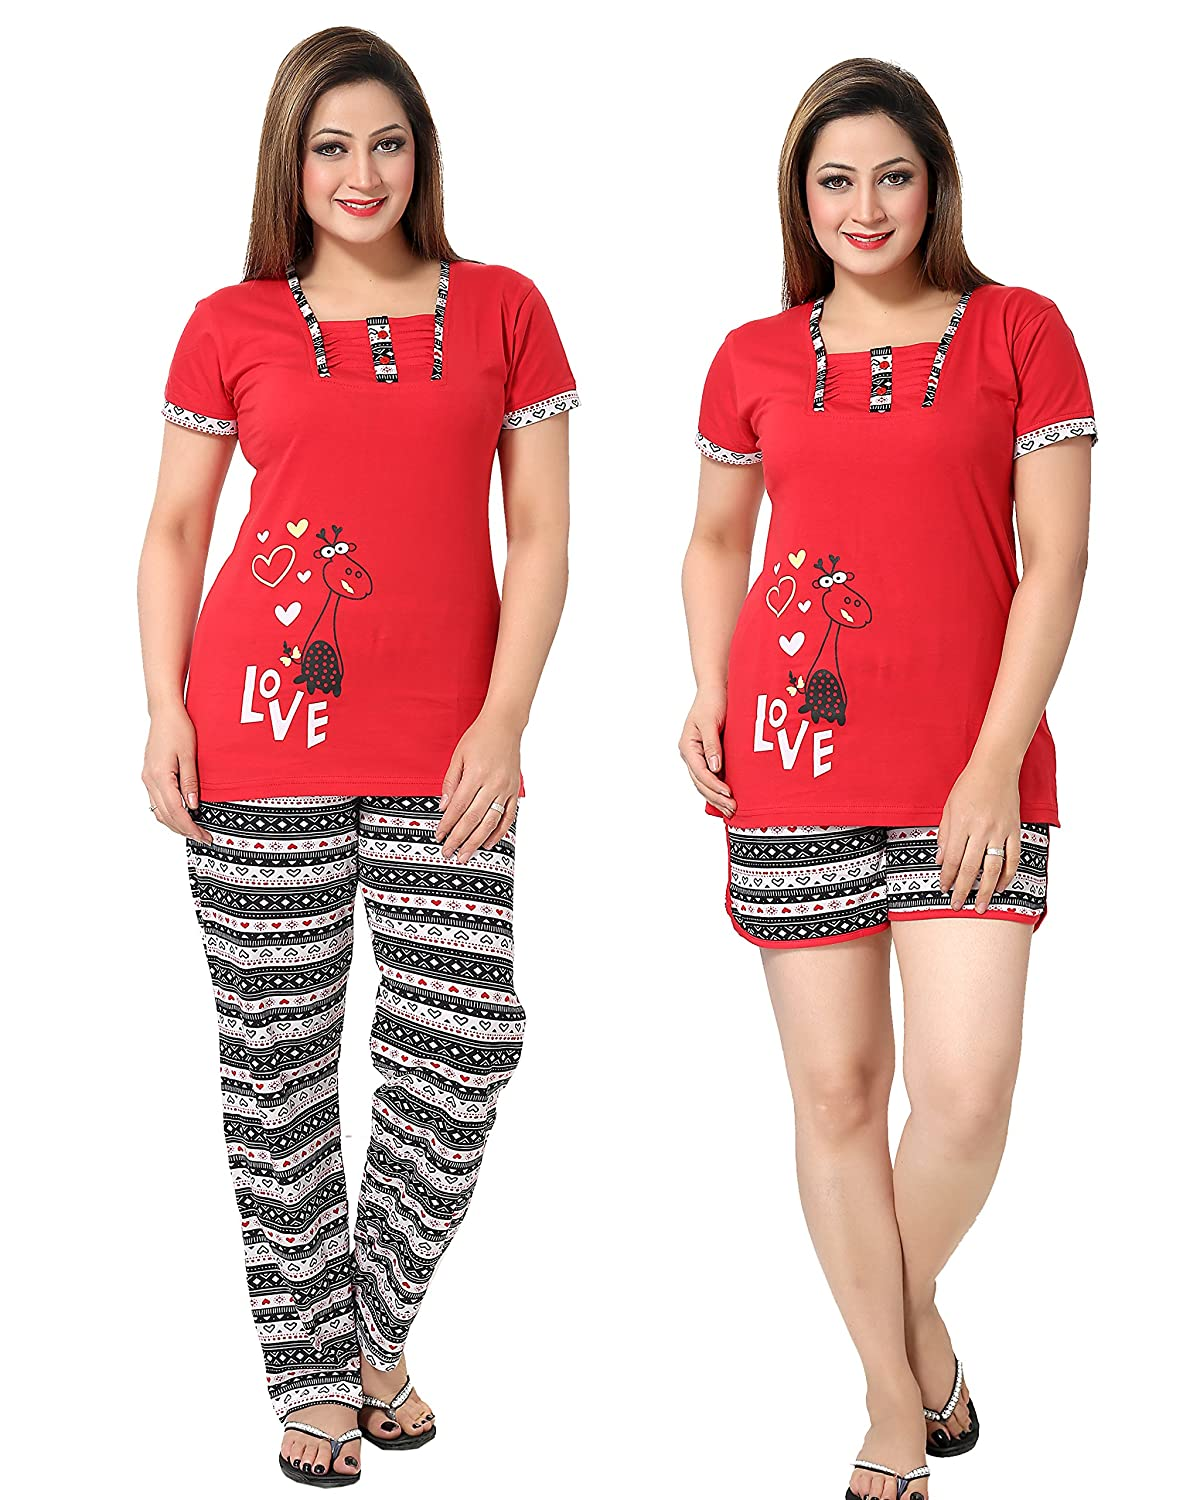 Women Red Graphic Top, Pyjama & Shorts Set